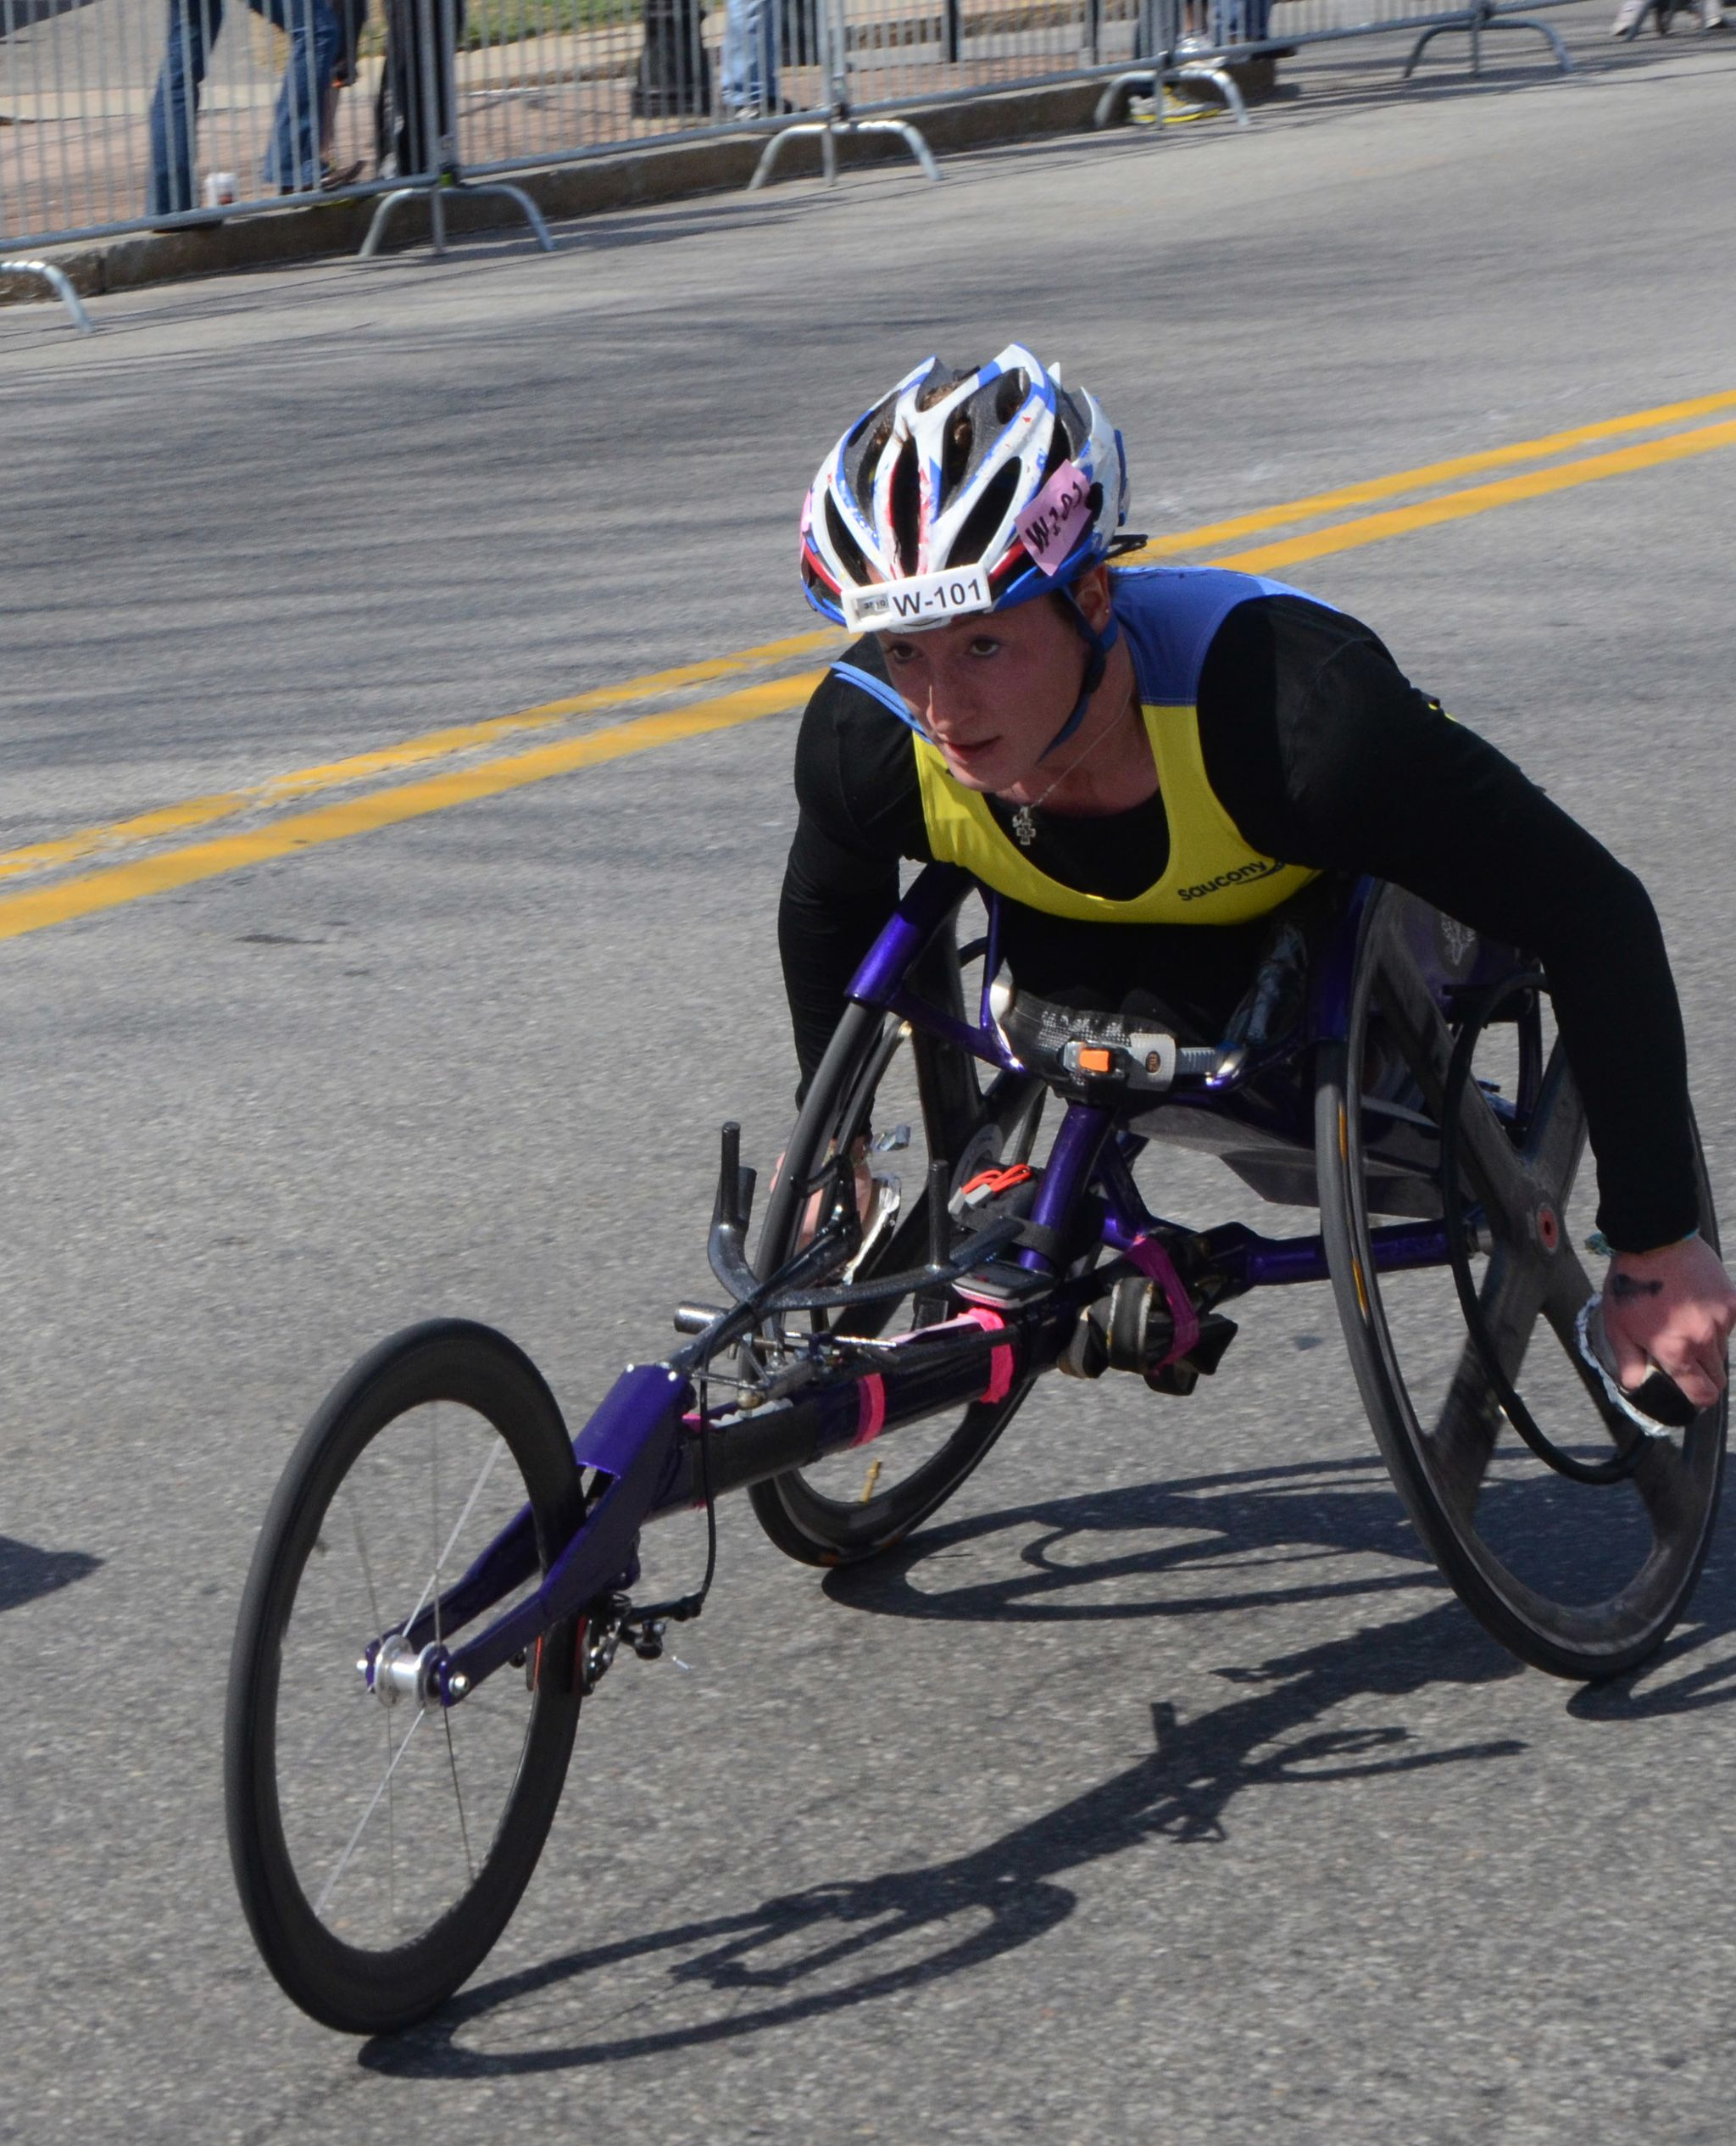 Tatyana McFadden in 2014 Boston Marathon (which she won), near halfway point in Wellesley. Photo By Gr5 (Own work) [CC BY-SA 3.0 (http://creativecommons.org/licenses/by-sa/3.0)], via Wikimedia Commons